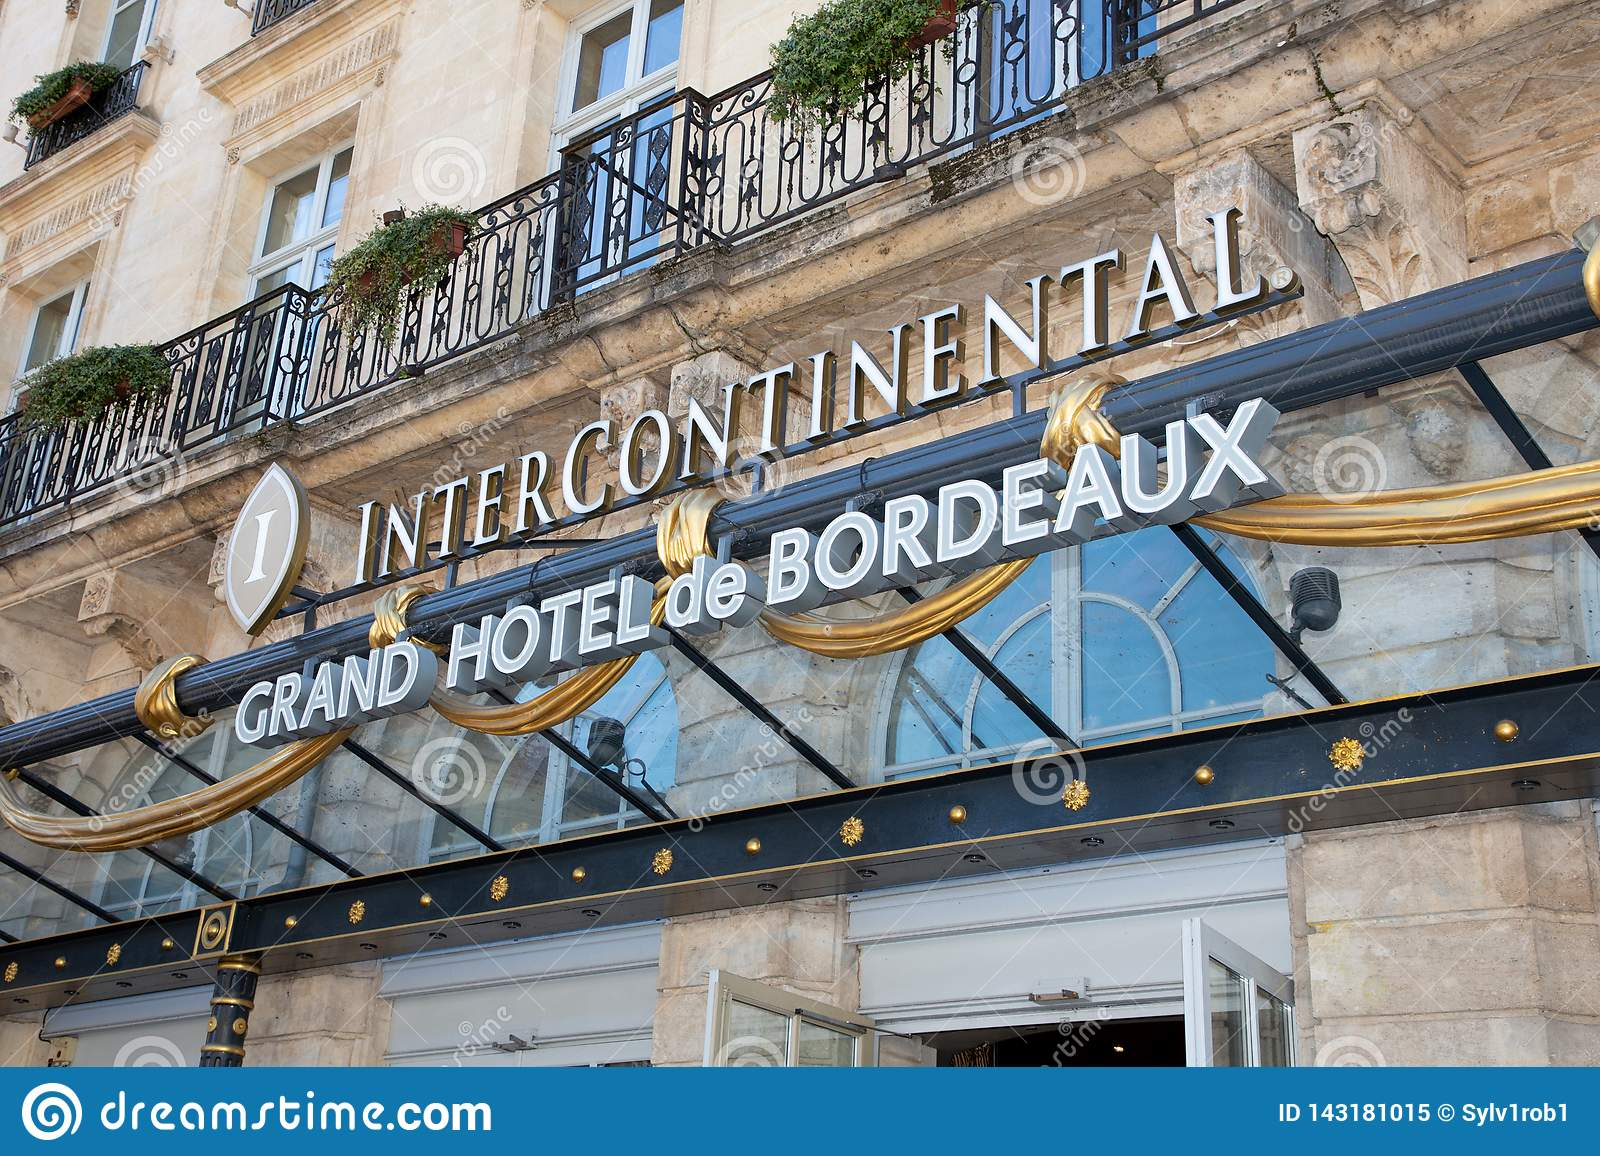 Bordeaux Aquitaine France March 22 2019 Intercontinental Bordeaux The Le Grand Hotel Luxury Hotel Located In Magnificent Editorial Image Image Of Romantic City 143181015